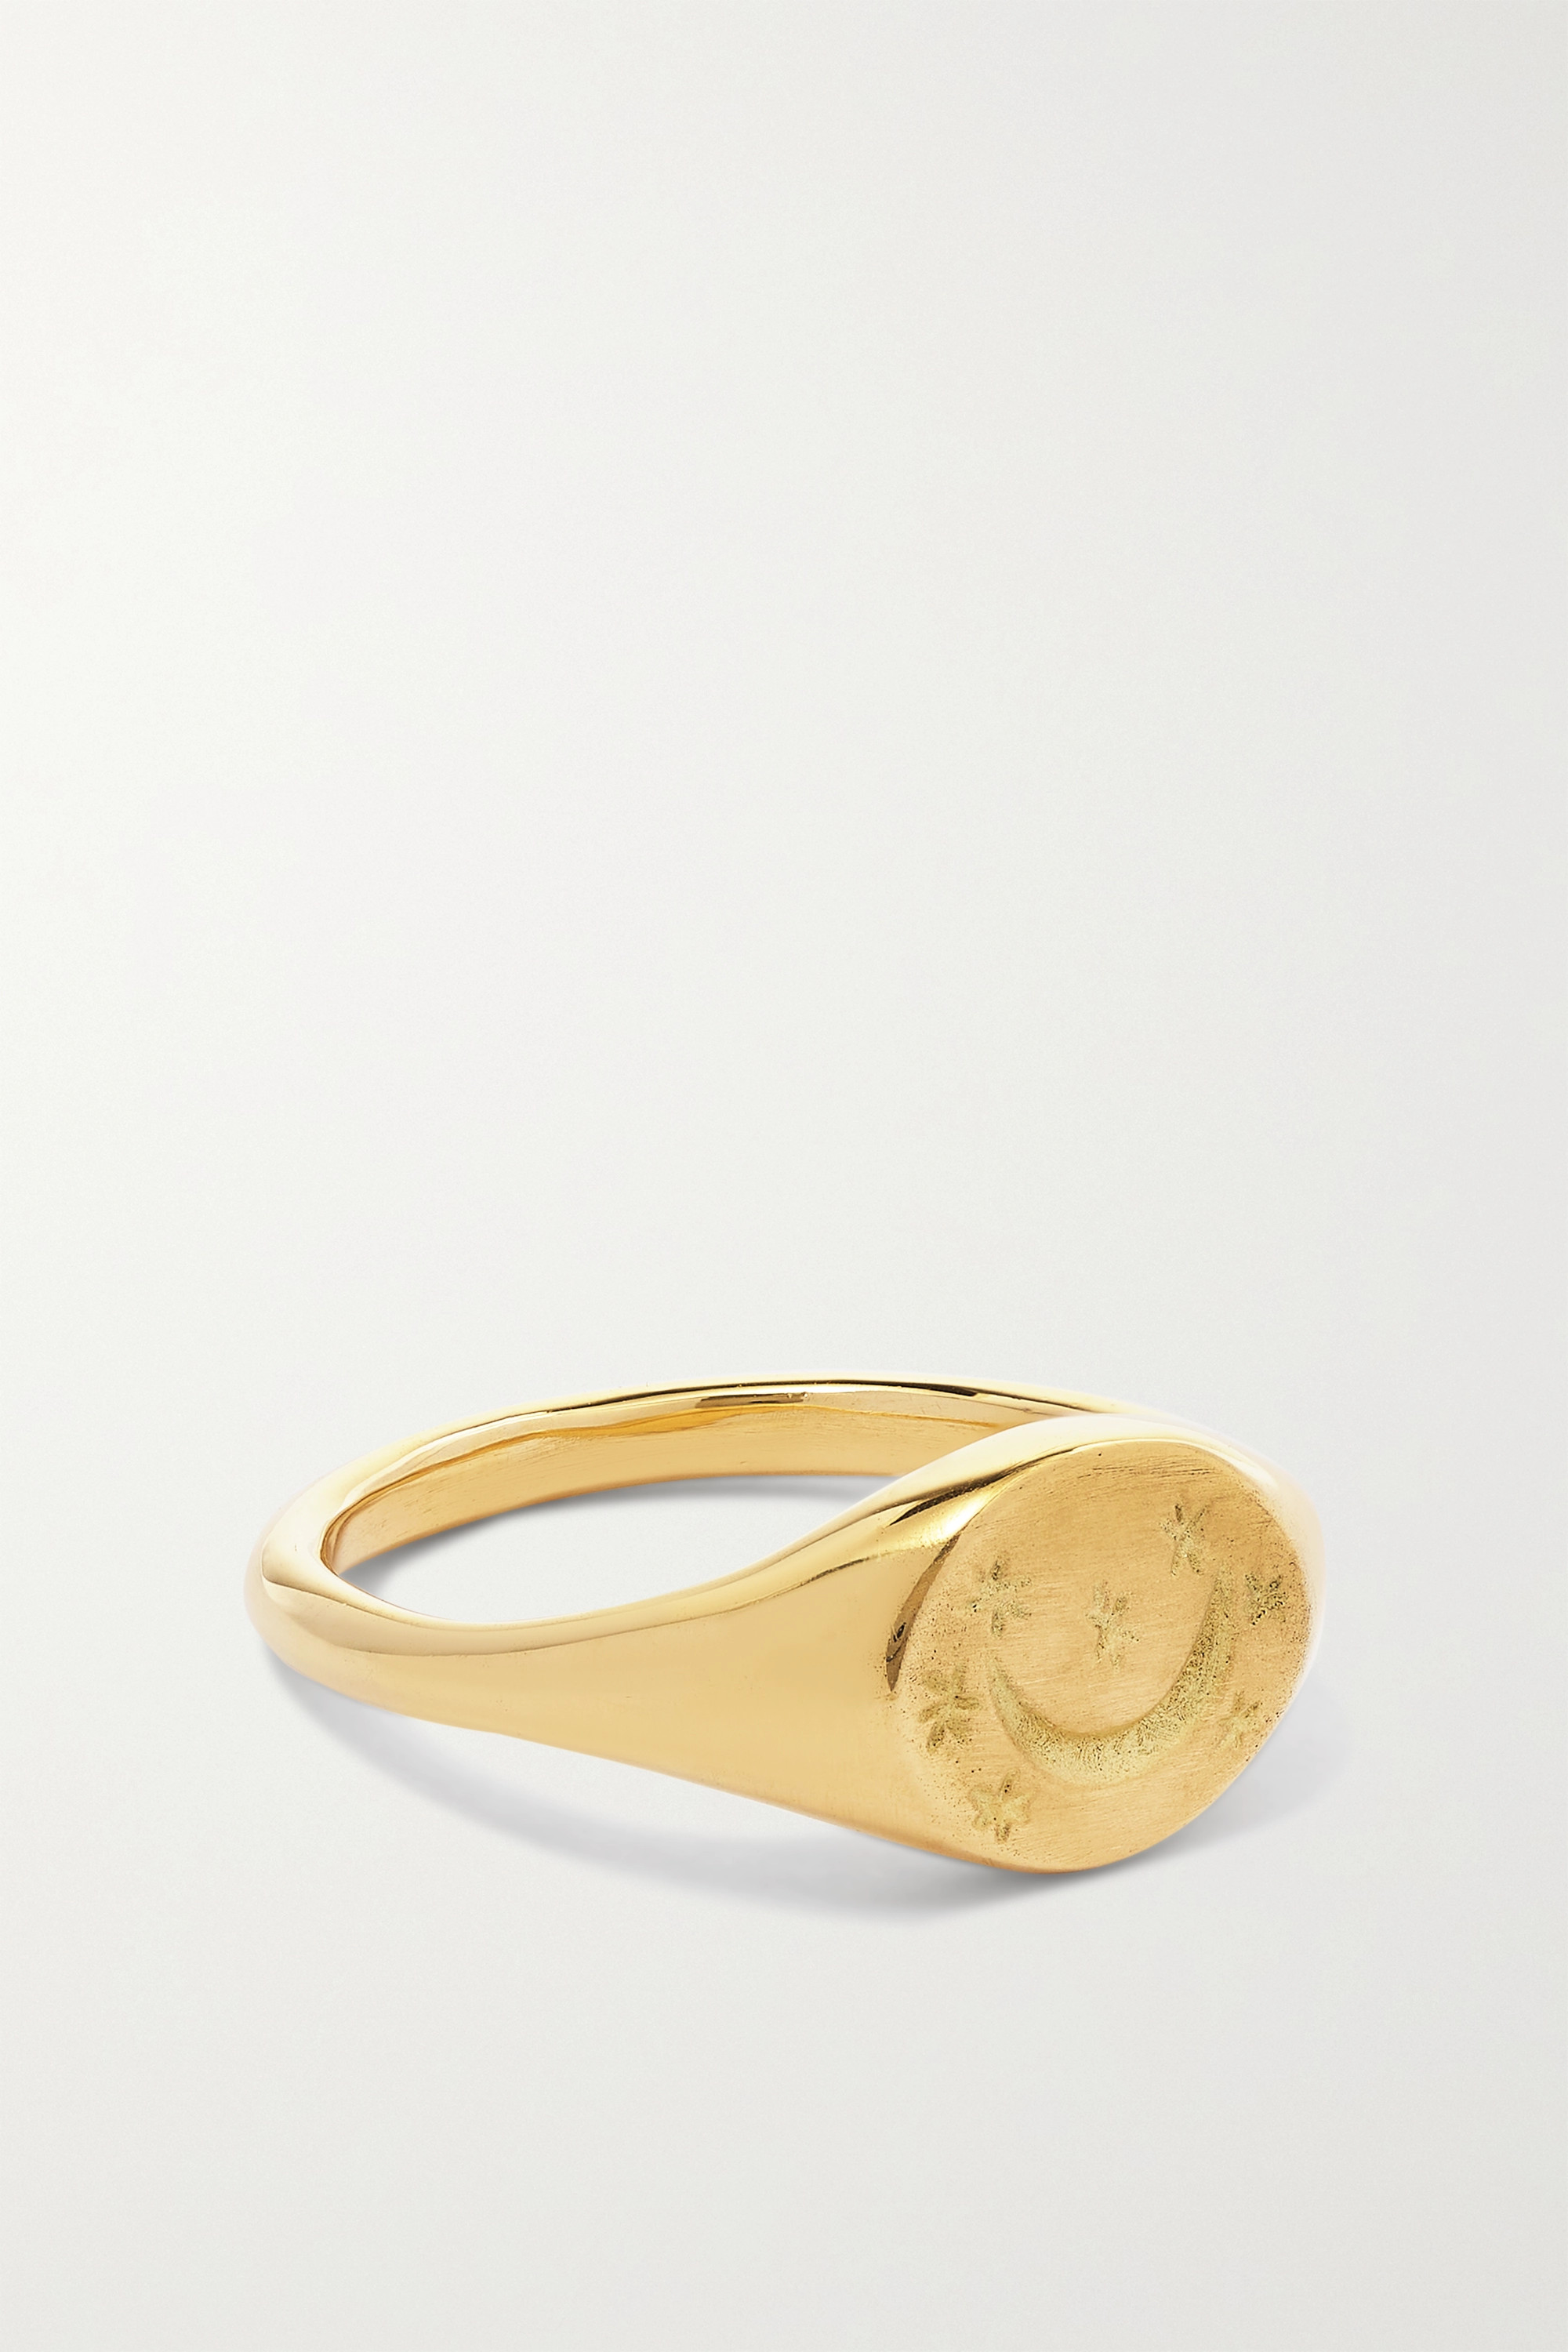 Dubini - 18-karat gold ring